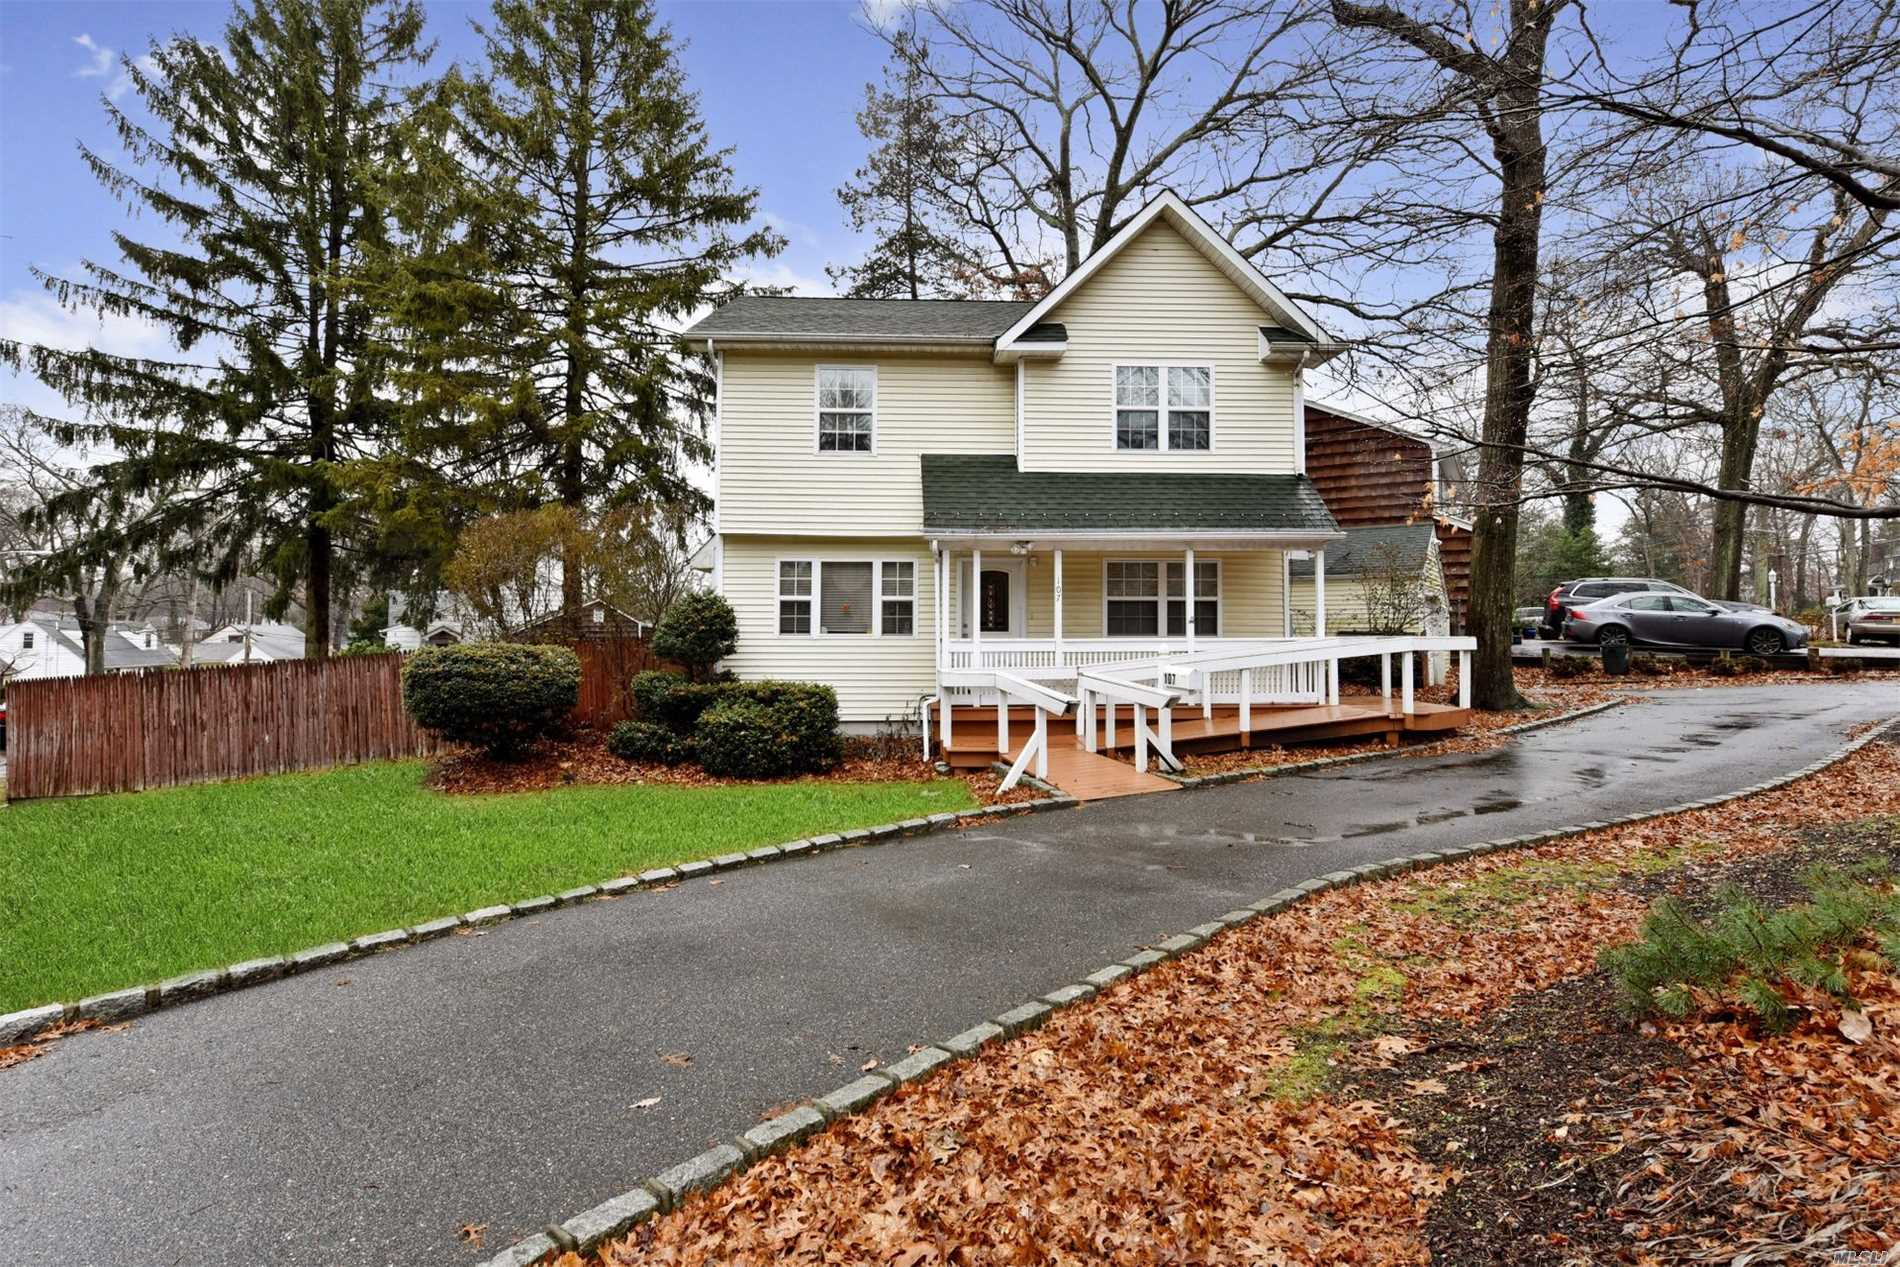 Photo of home for sale at 107 17th St E, Huntington Sta NY